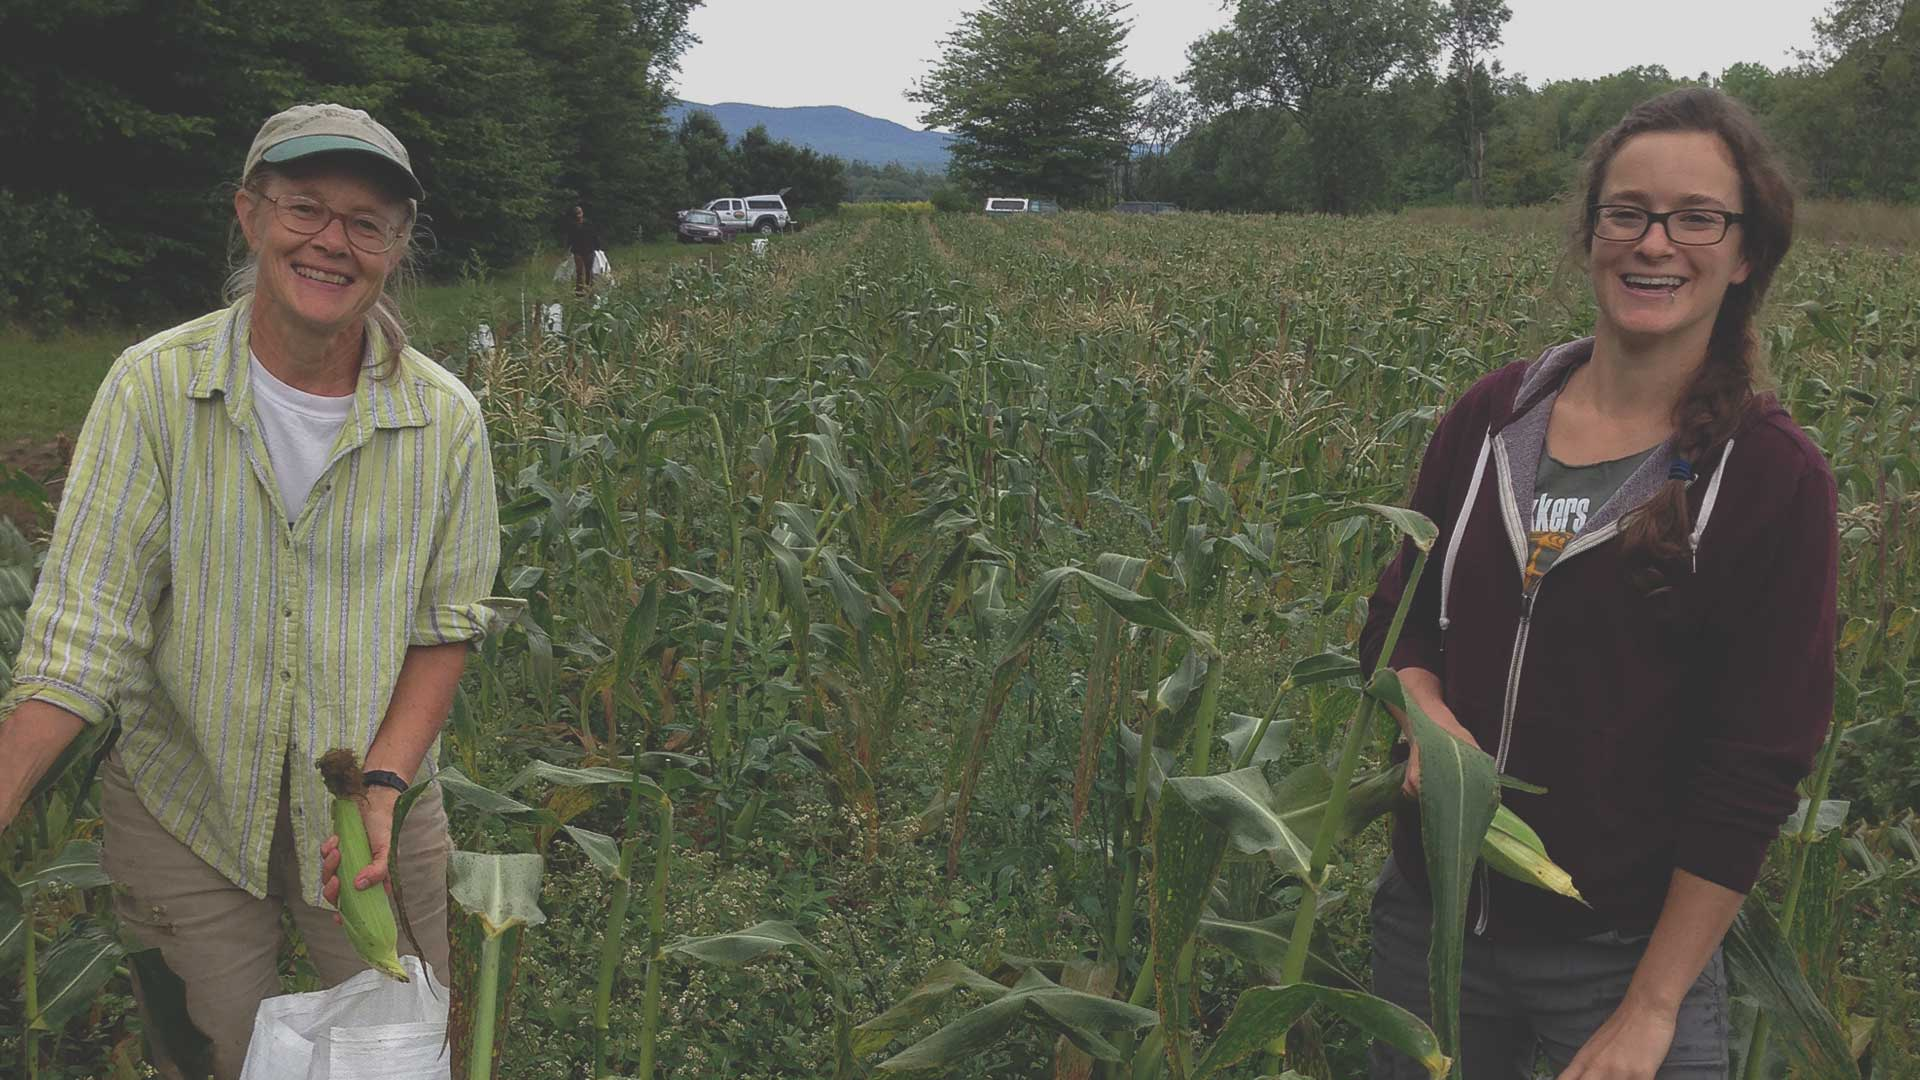 Organic Farmland in Transition from High Mowing Organic Seeds blog